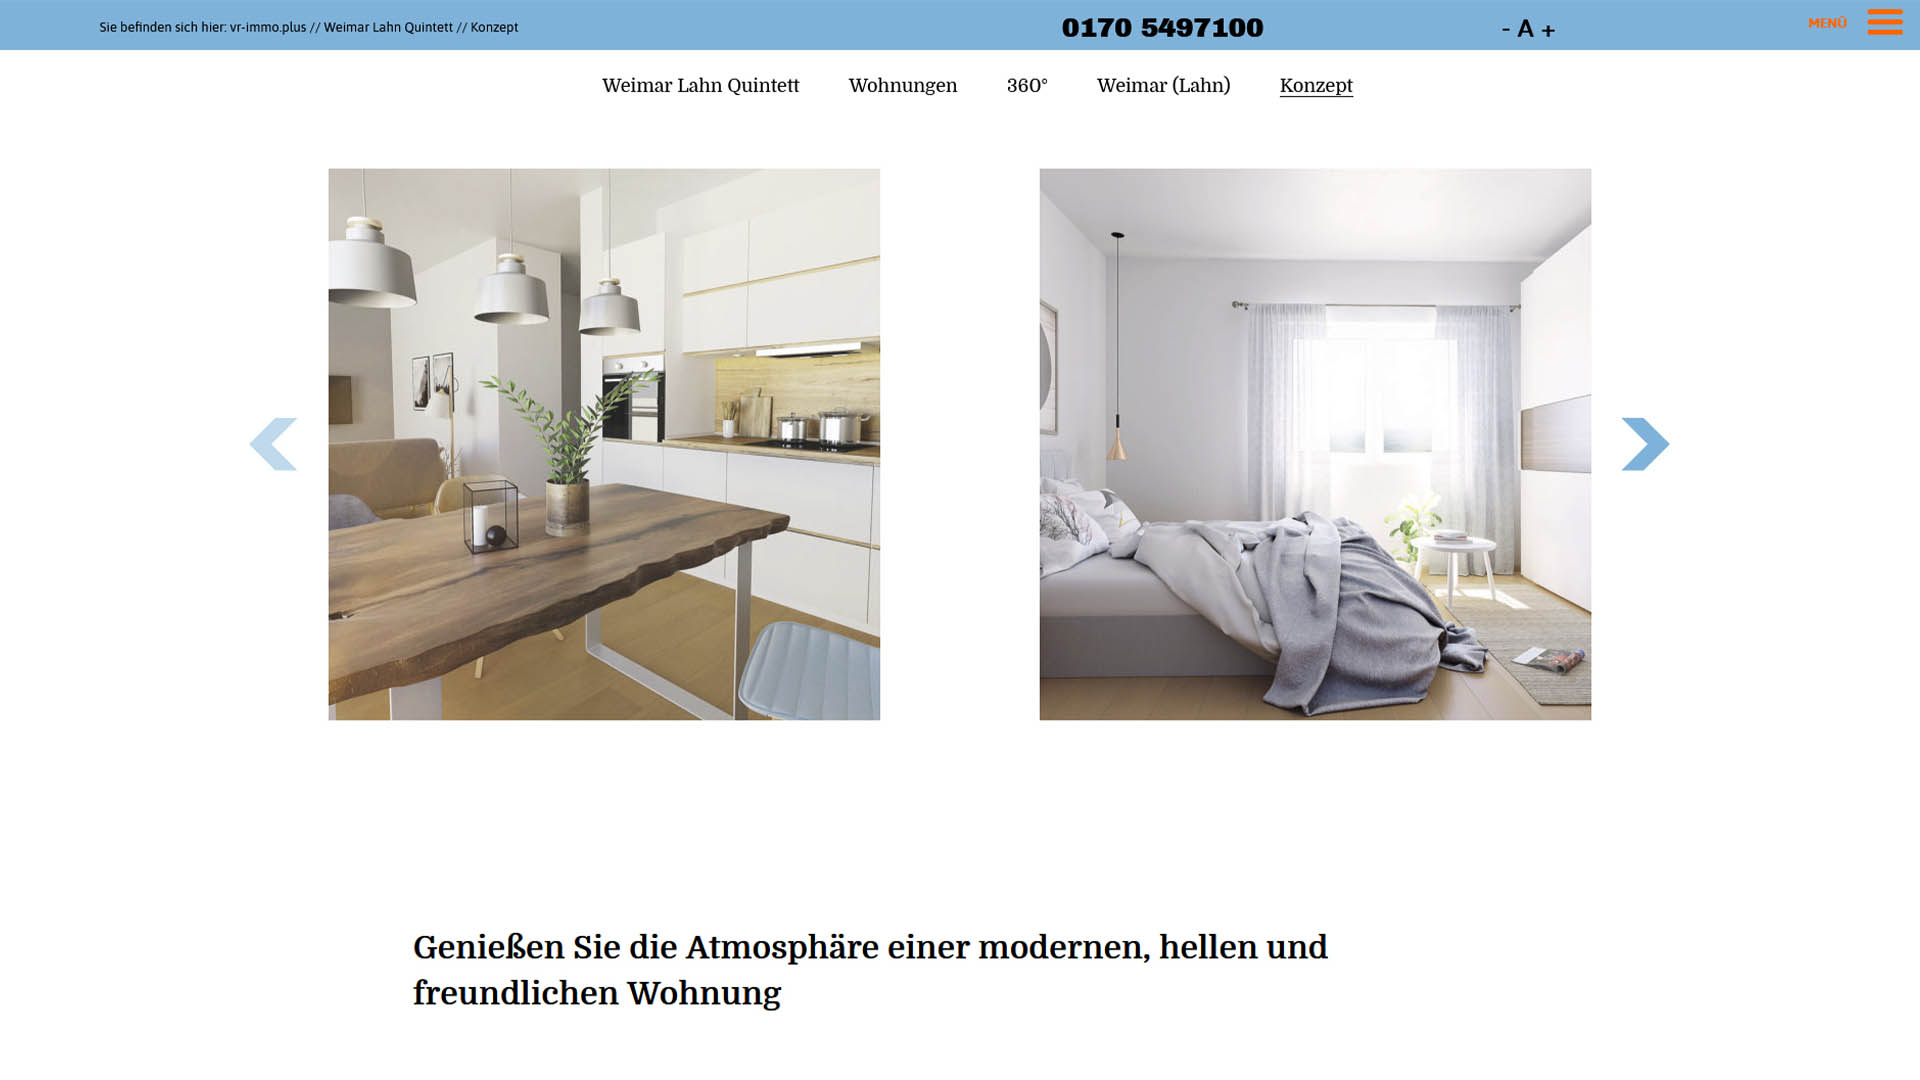 Immobilienmarketing vr-immoplus Webseite